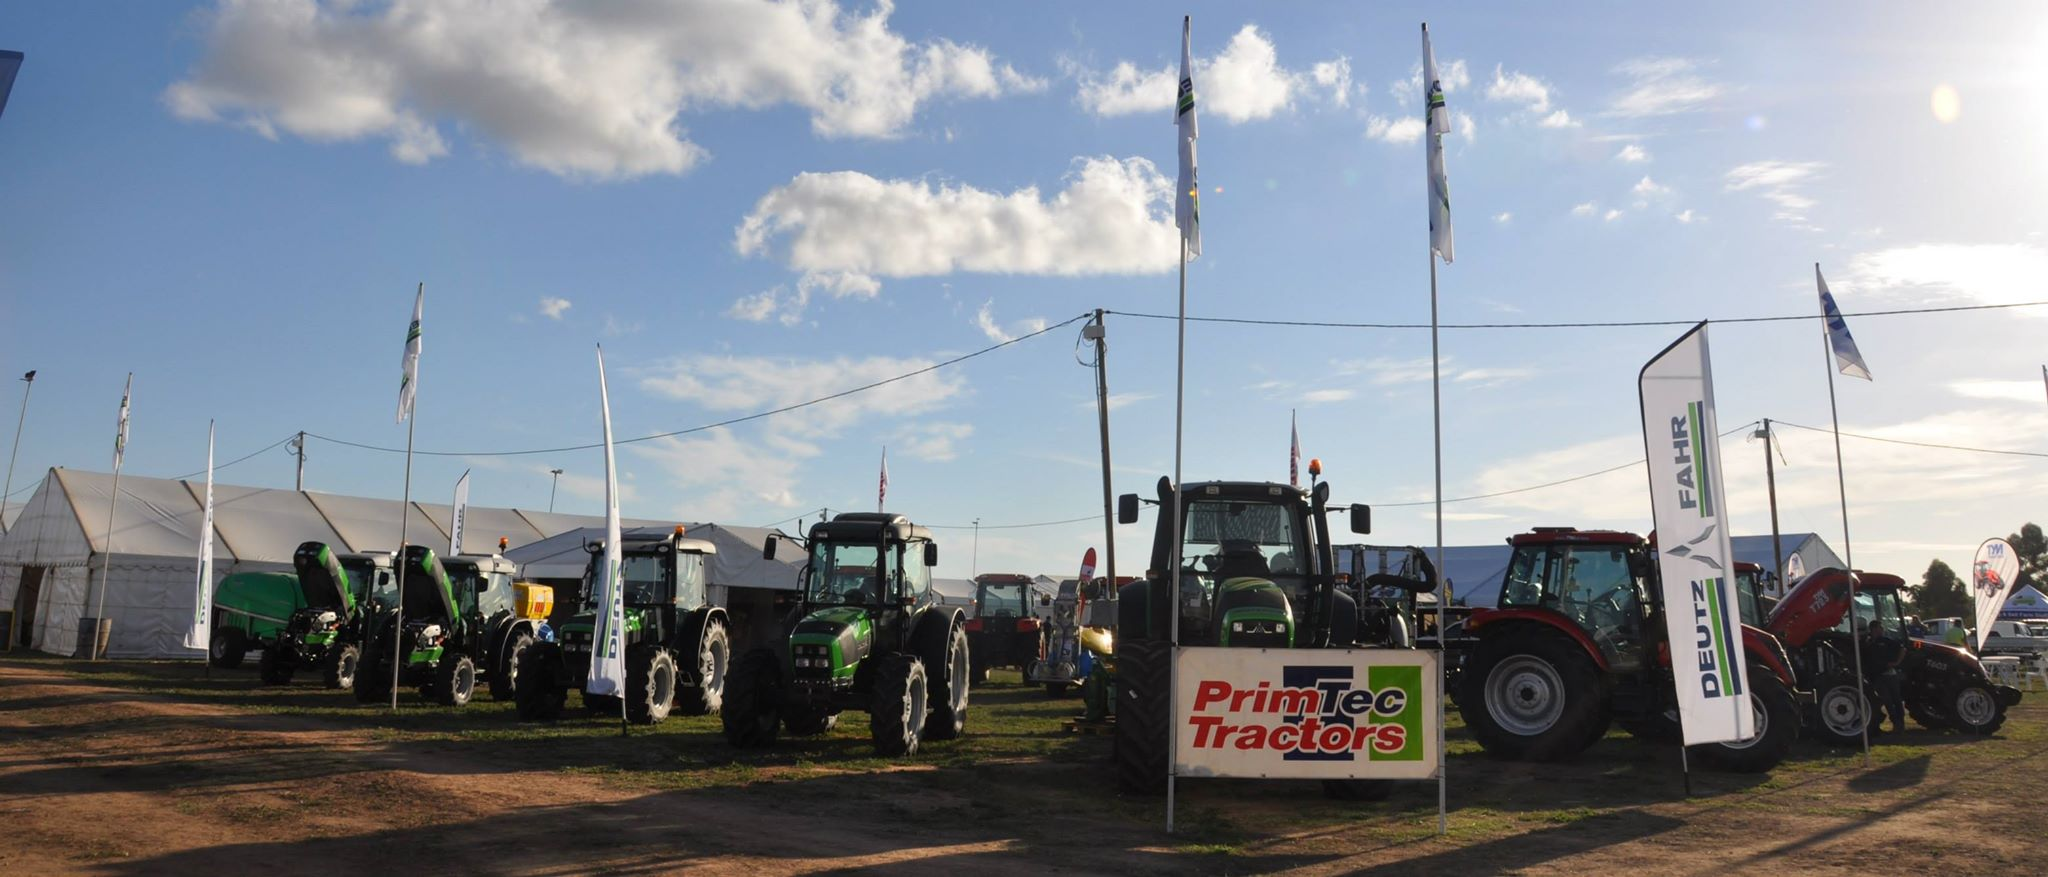 Primtec tractor showing at a previous Mildura Field Days